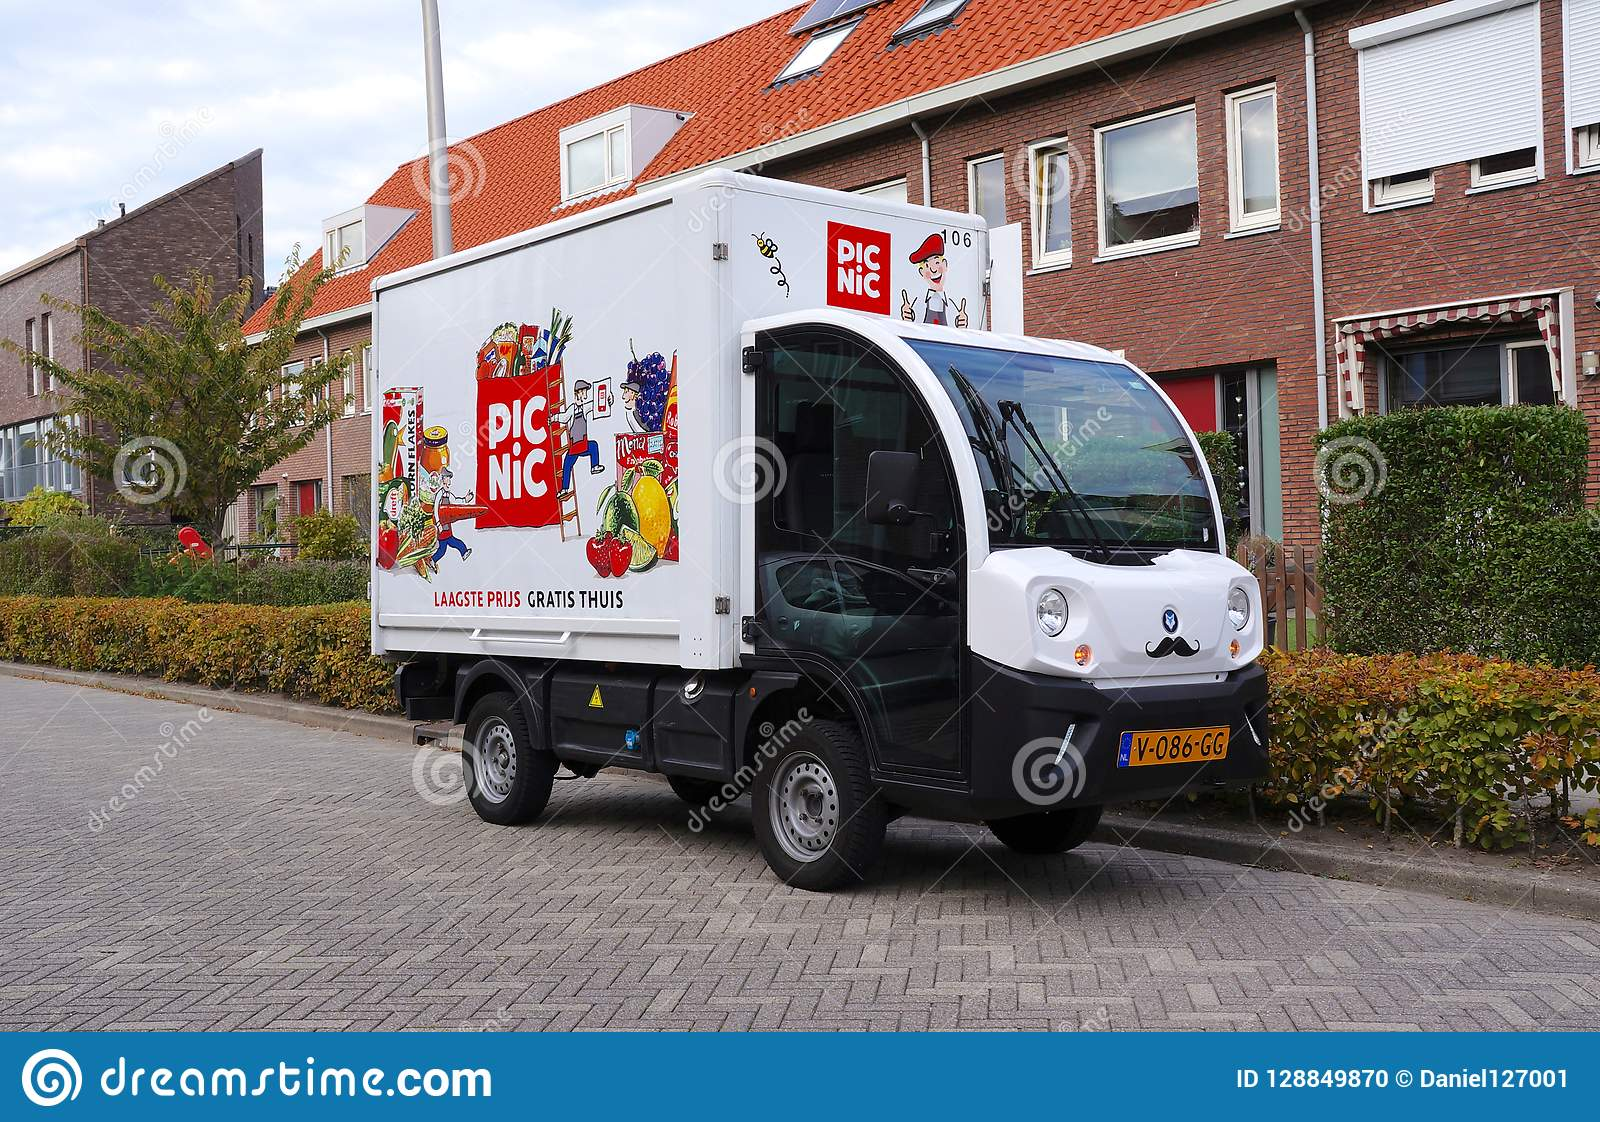 Picnic delivery truck, the Netherlands